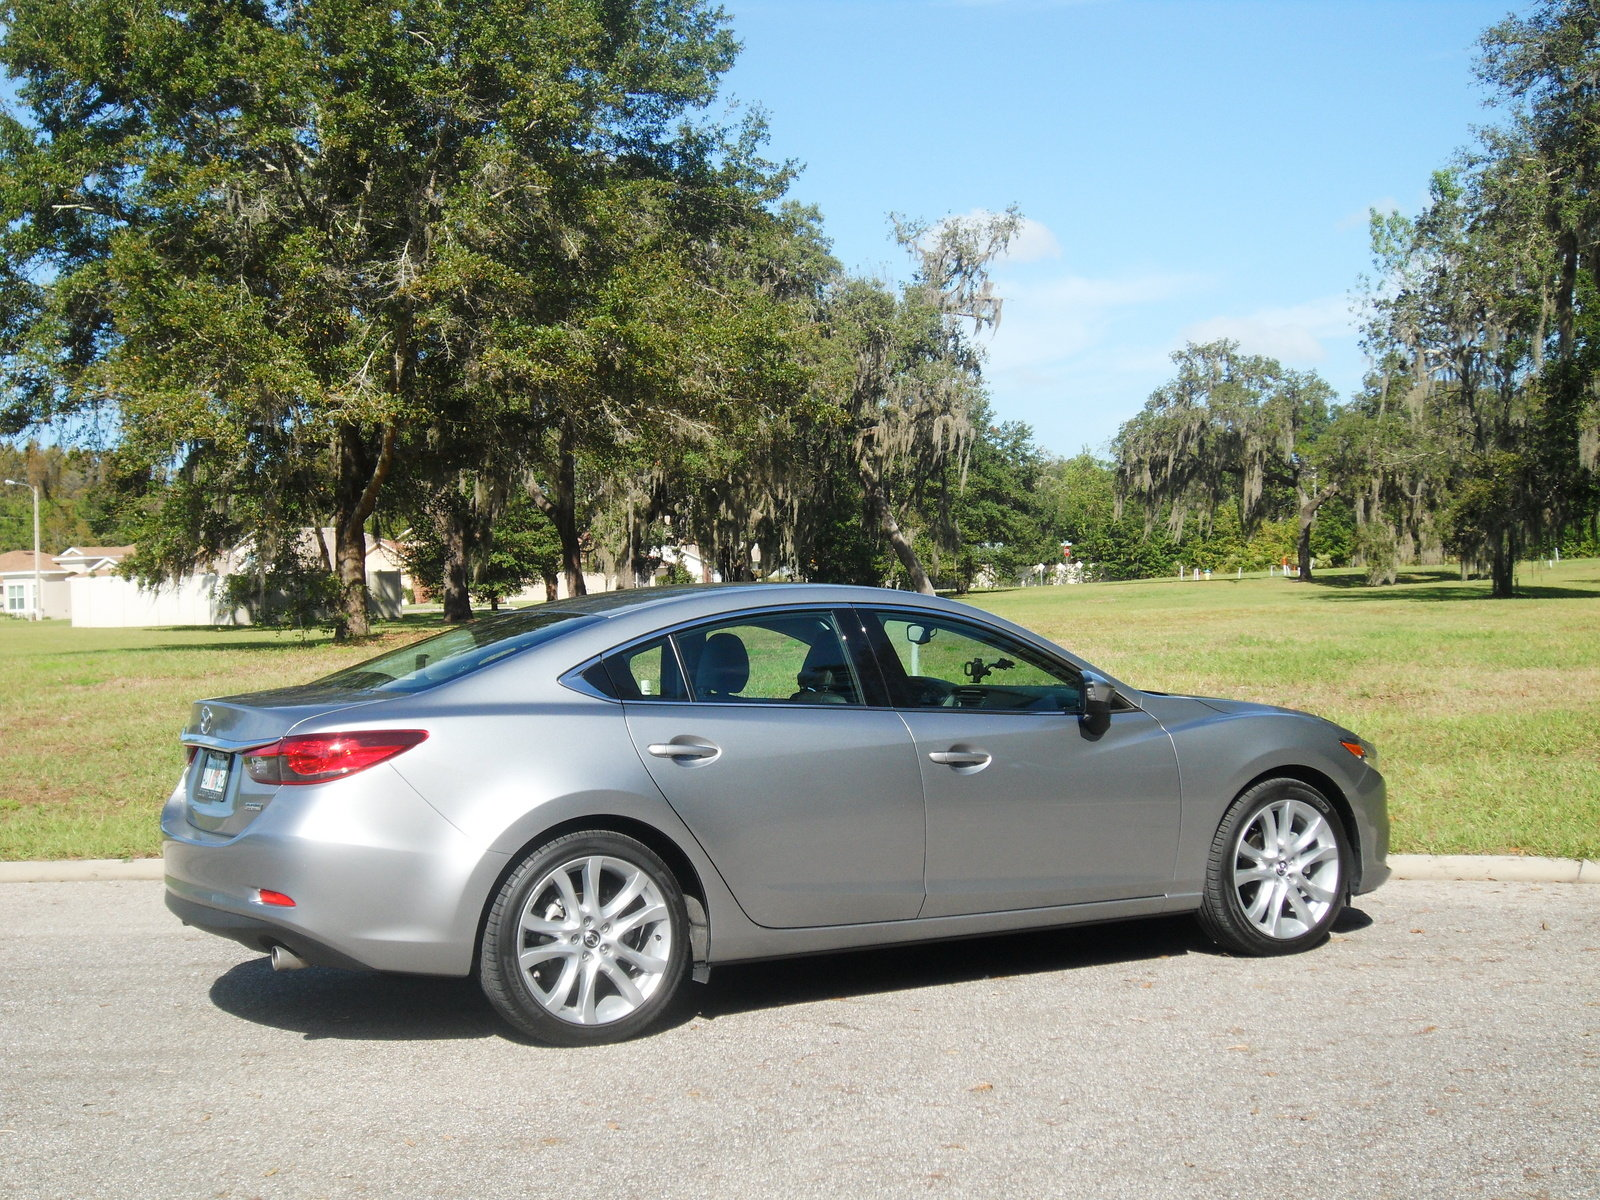 2014 mazda6 i touring driven picture 531415 car review top speed. Black Bedroom Furniture Sets. Home Design Ideas